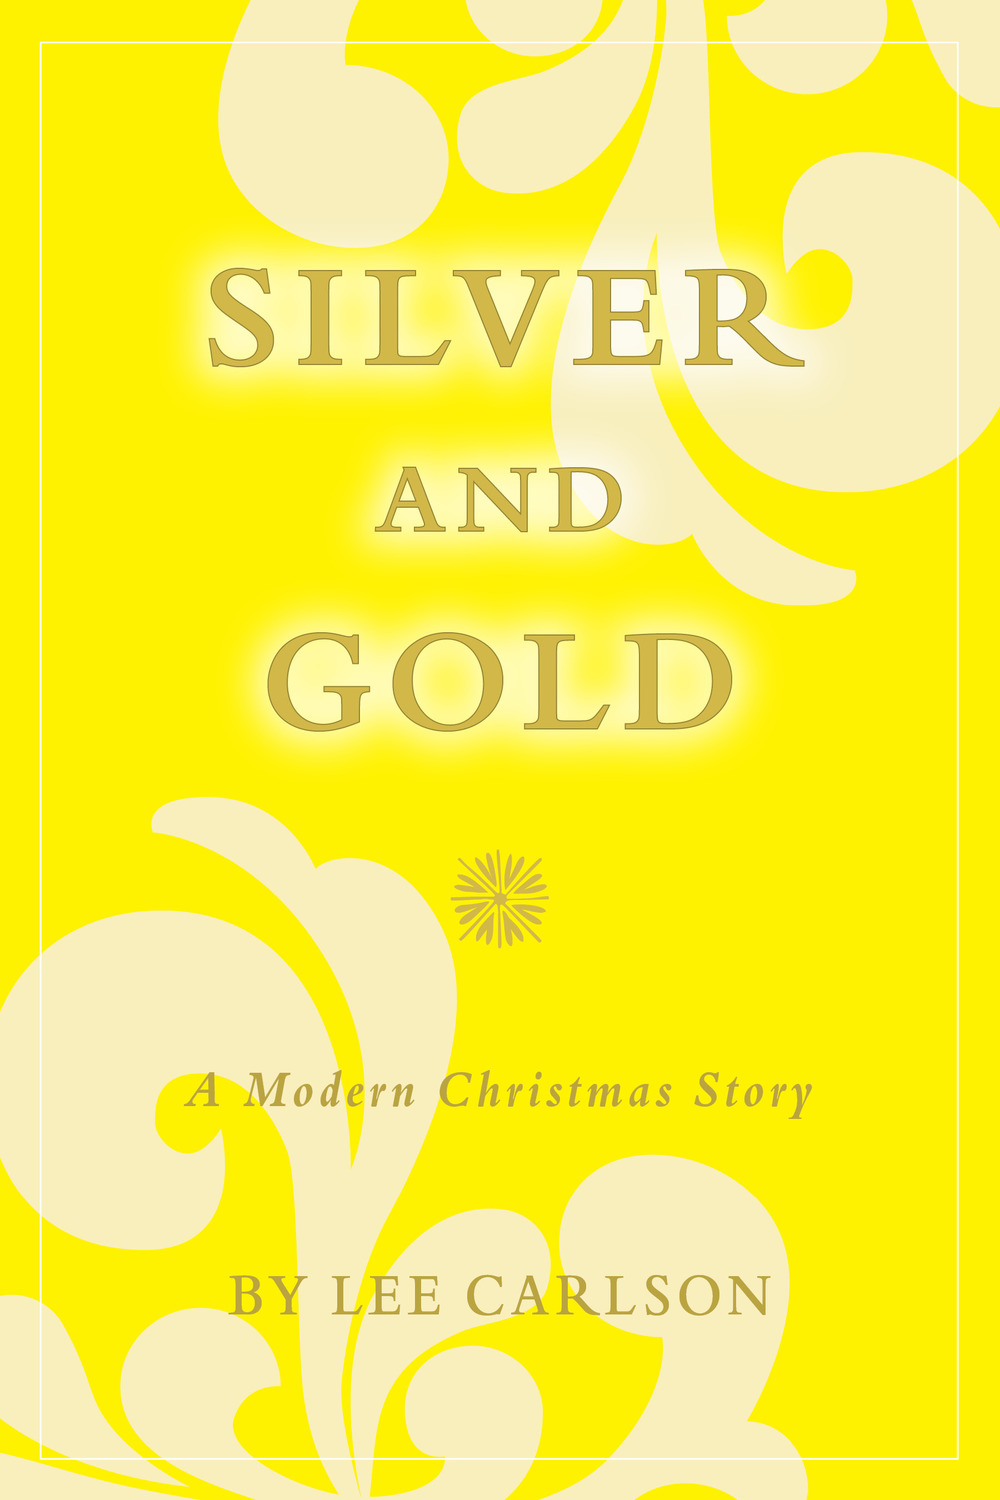 Lee Carlson's  Silver and Gold